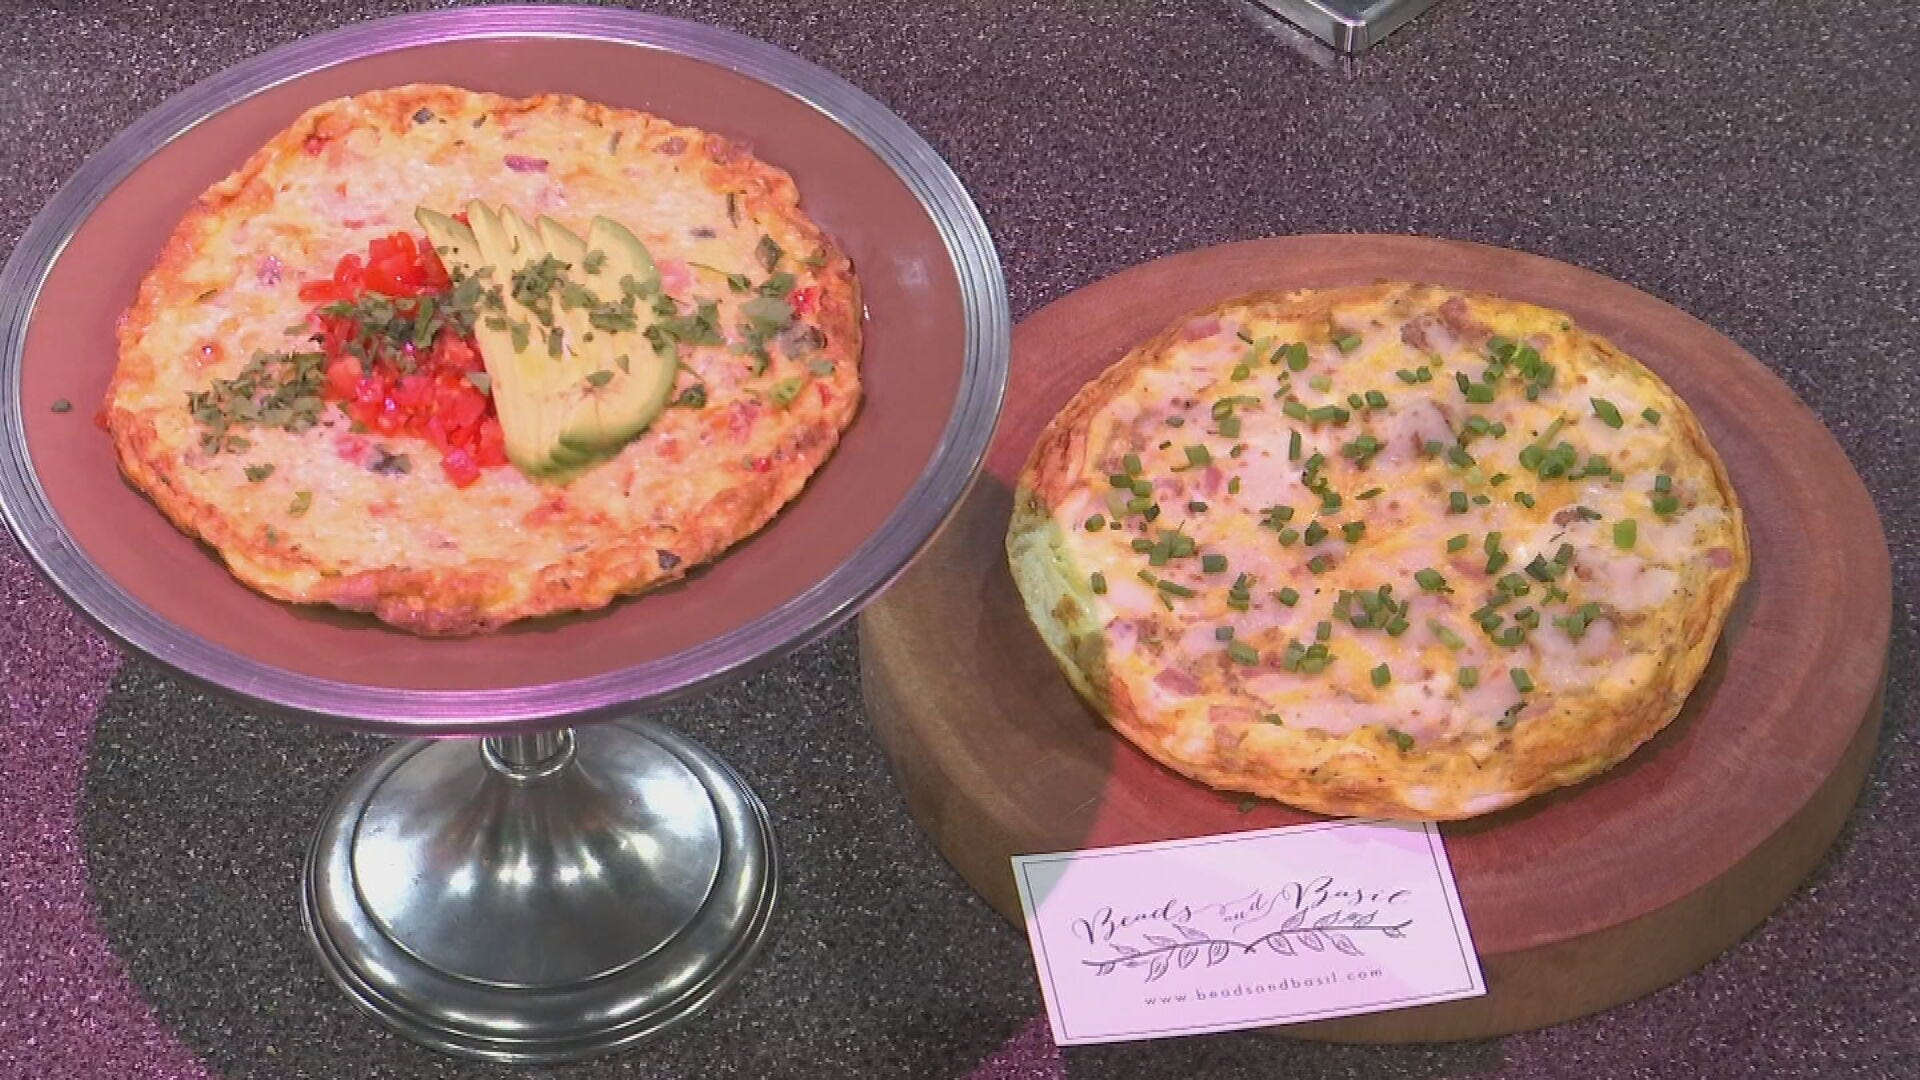 Roasted Vegetable Frittata With Asiago Cheese